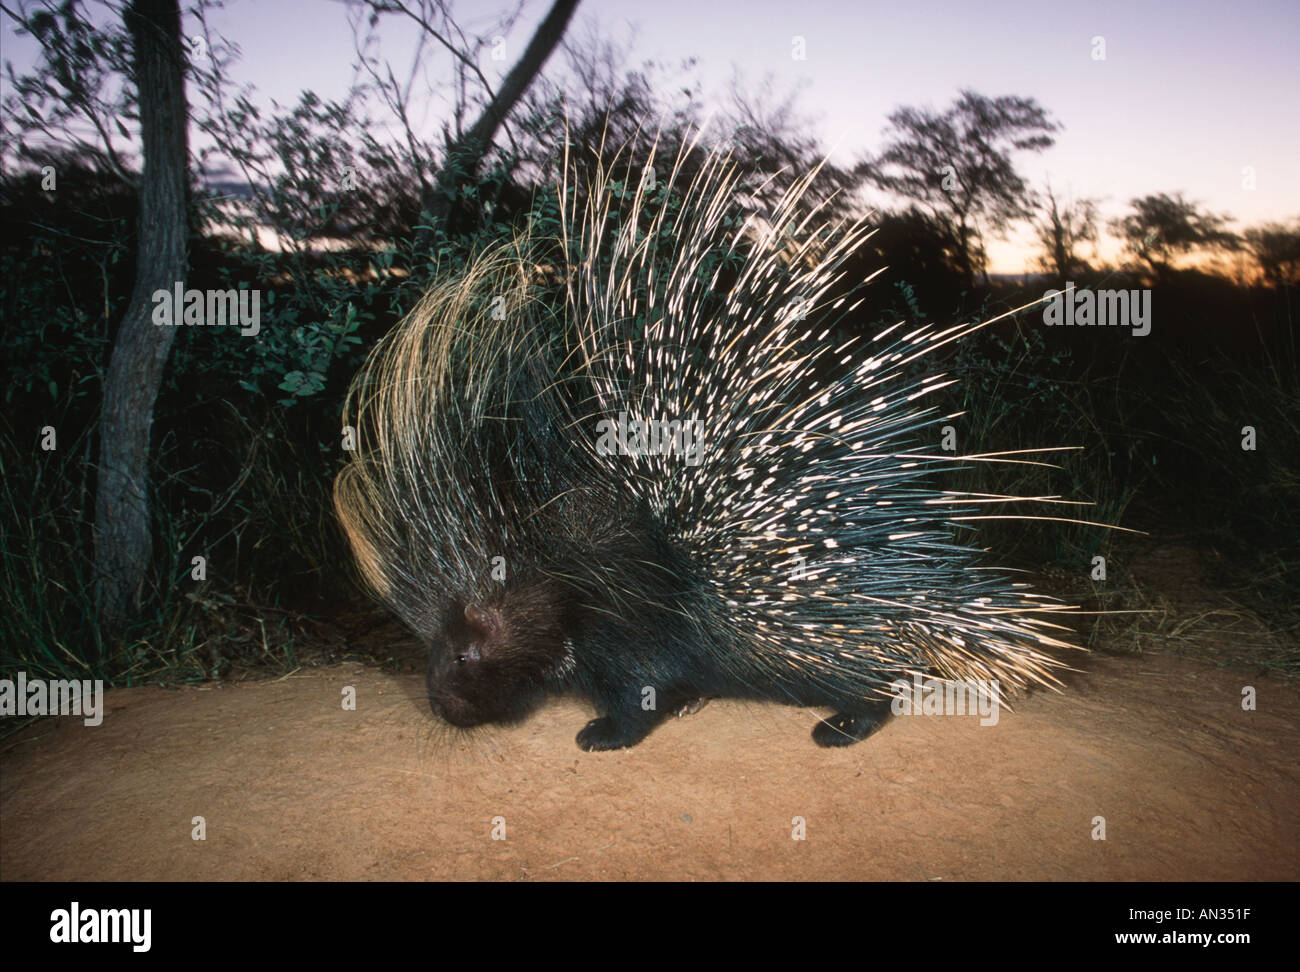 Porcupine Hystrix africaeaustralis Africa largest rodent Namibia Central East Southern Africa - Stock Image